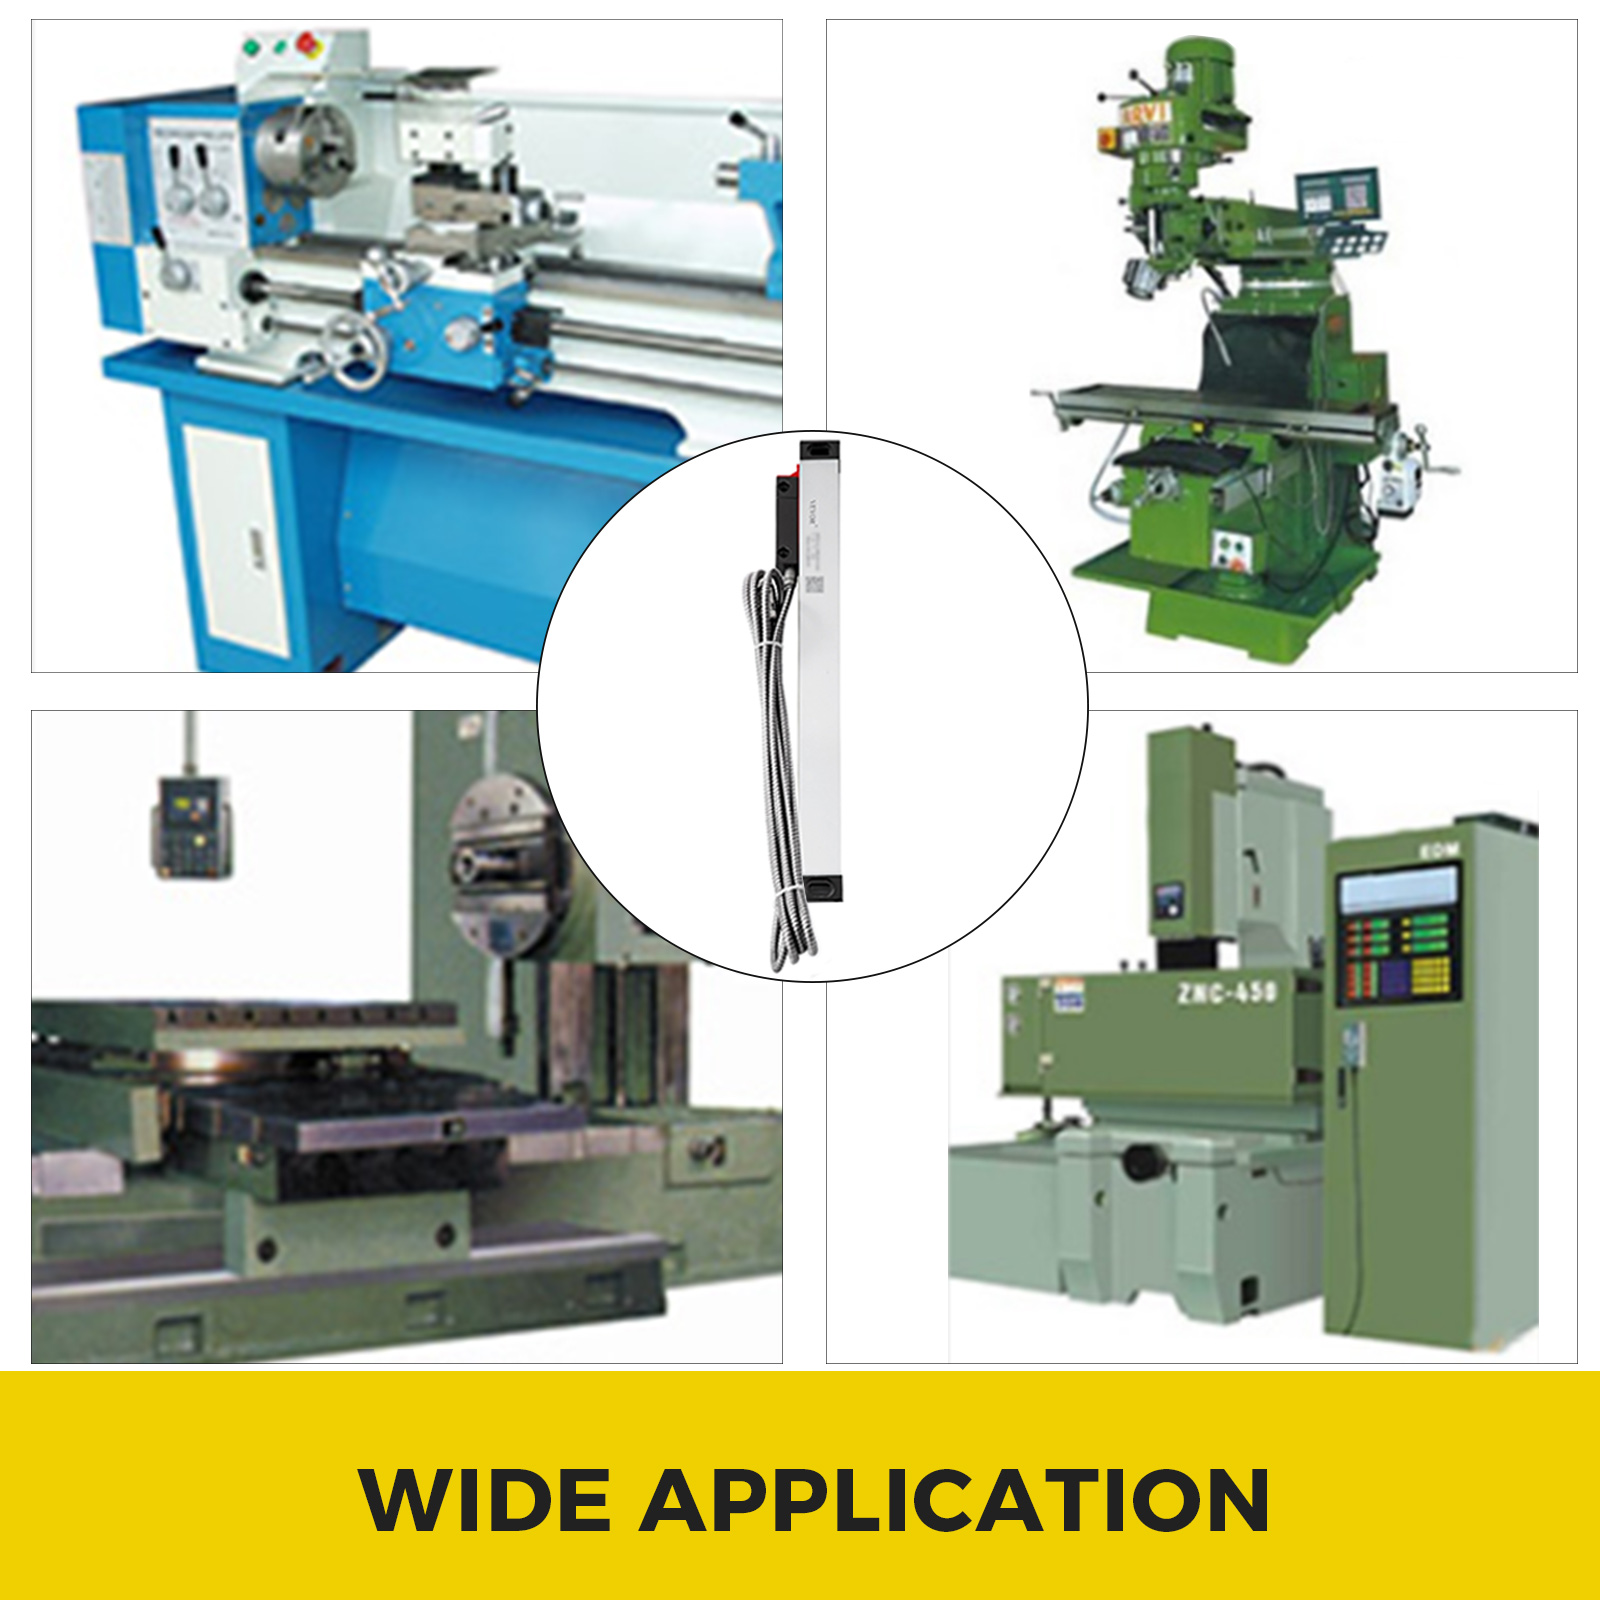 2-3-Axis-Digital-Readout-Linear-Scale-Double-Seal-5-Bearing-System-Grinding thumbnail 79